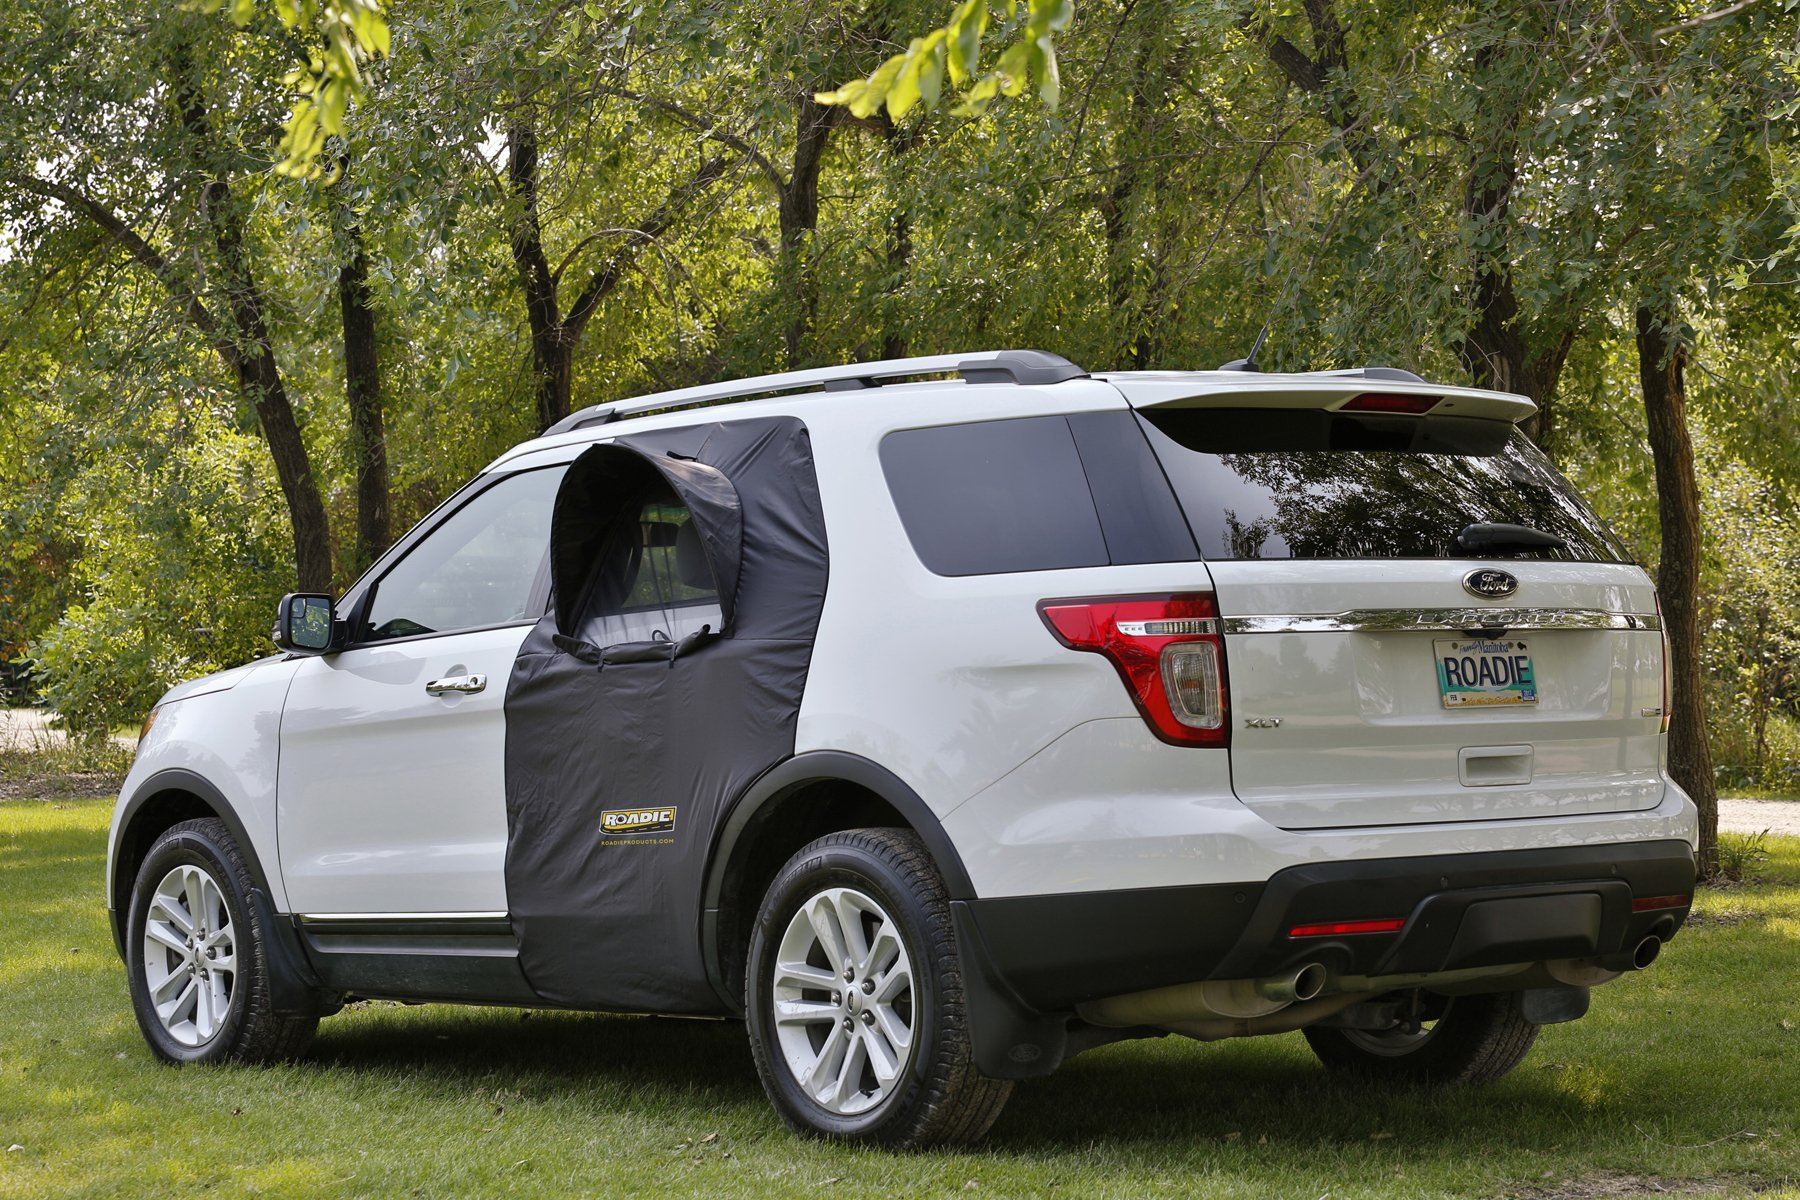 Roadie THE OVERNIGHTER SUV Window Tent - with Screen and Retractable Canopy